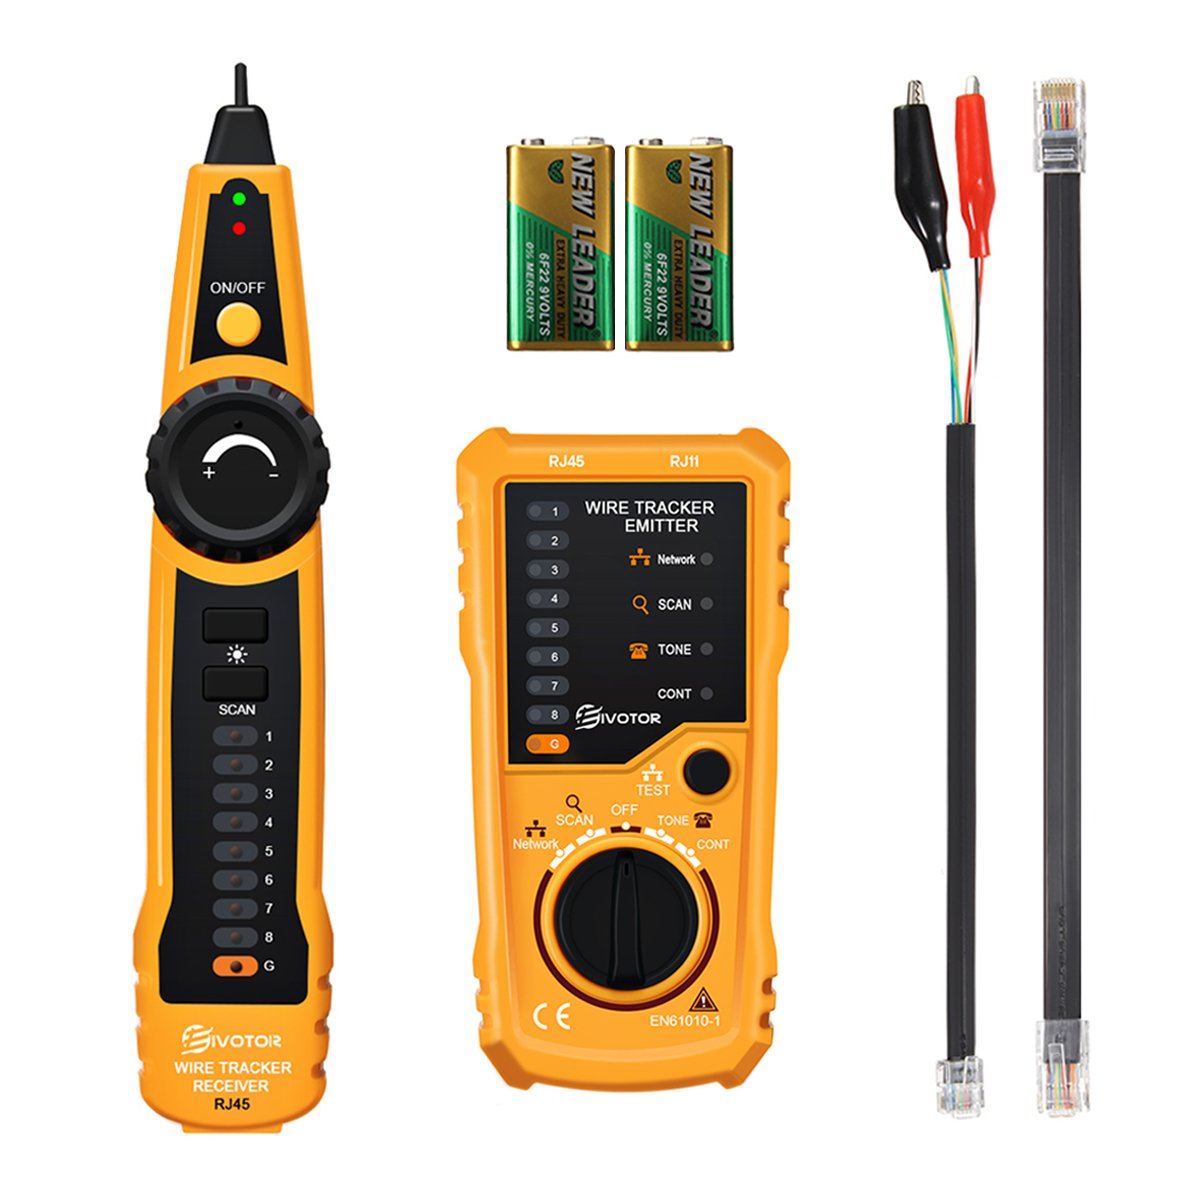 Network Cable Tester, EIVOTOR Telephone Wire Tracker Network LAN Ethernet RJ45 RJ11 Cable Tester Muti-purpose Line Finder for Telecommunications, Broadband Networks, Infrastructure, and Other Lines (Yellow 2) EIVOTORHON25LIN205